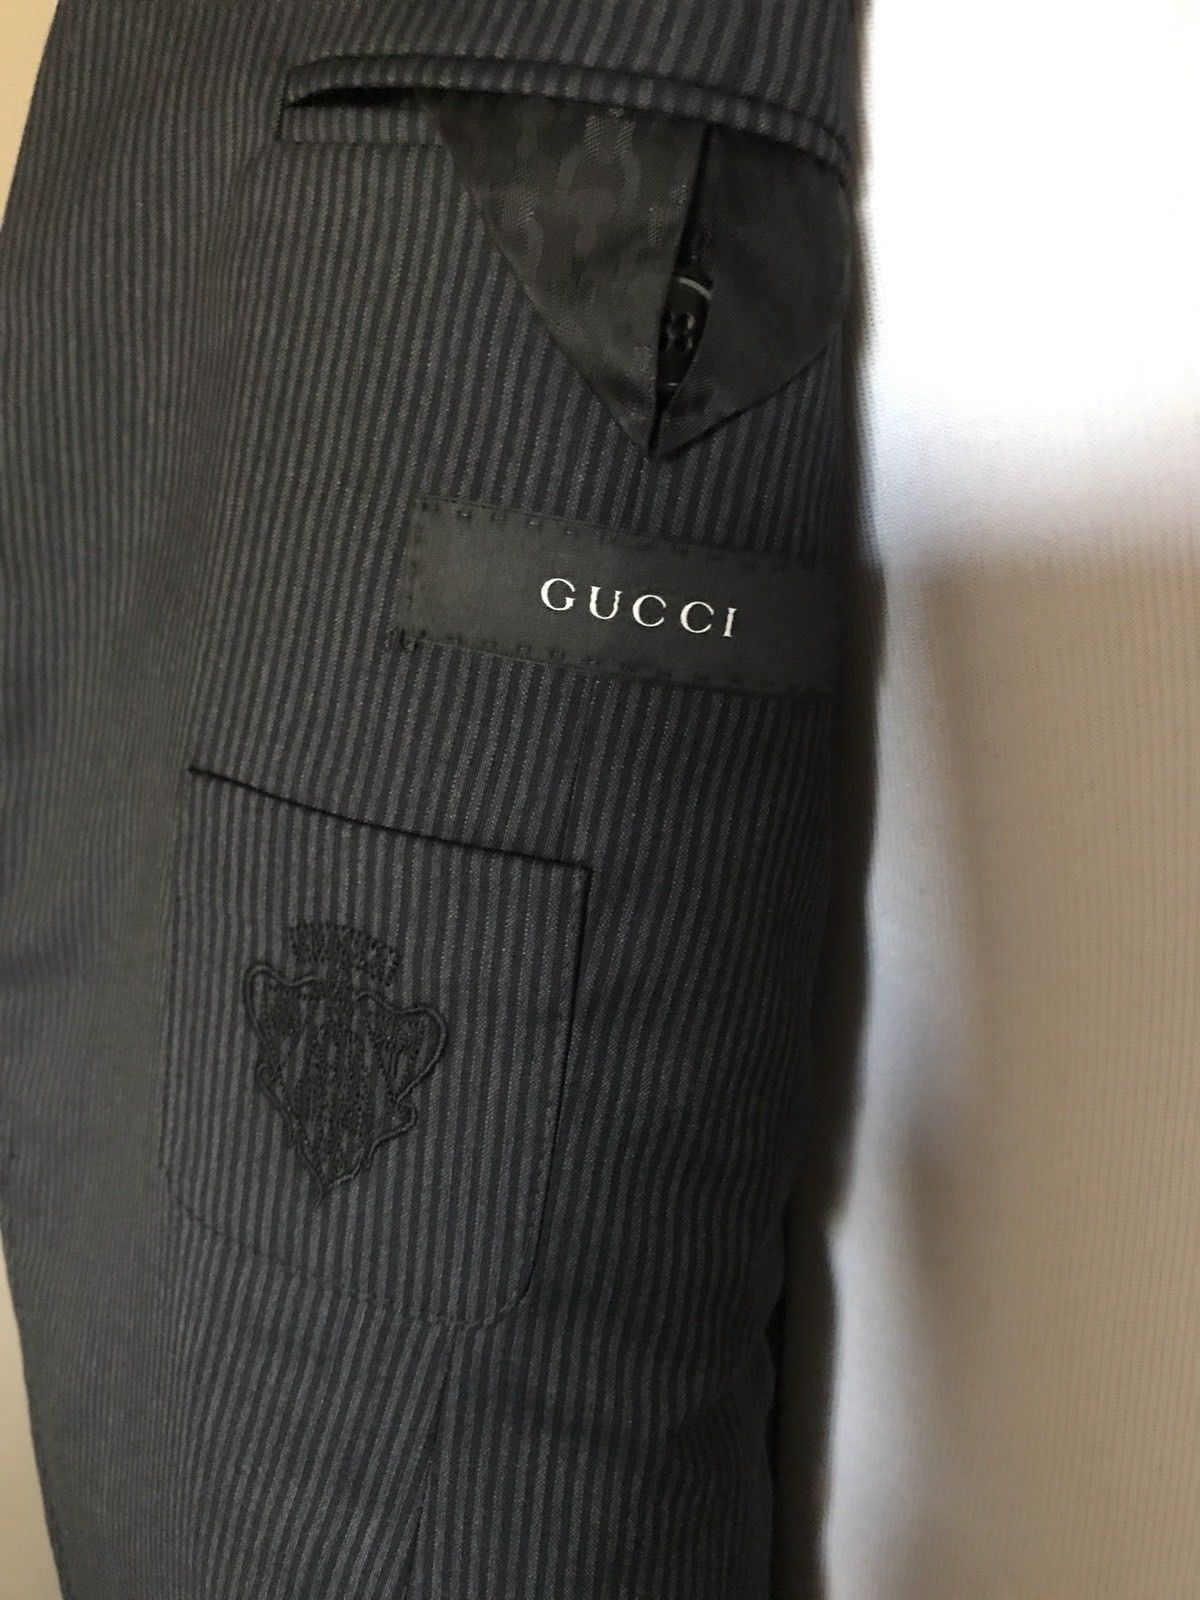 New $3145 Gucci Mens Wool Suit Gray Black Striped Stripped 40R US ( 50R Eu)Italy